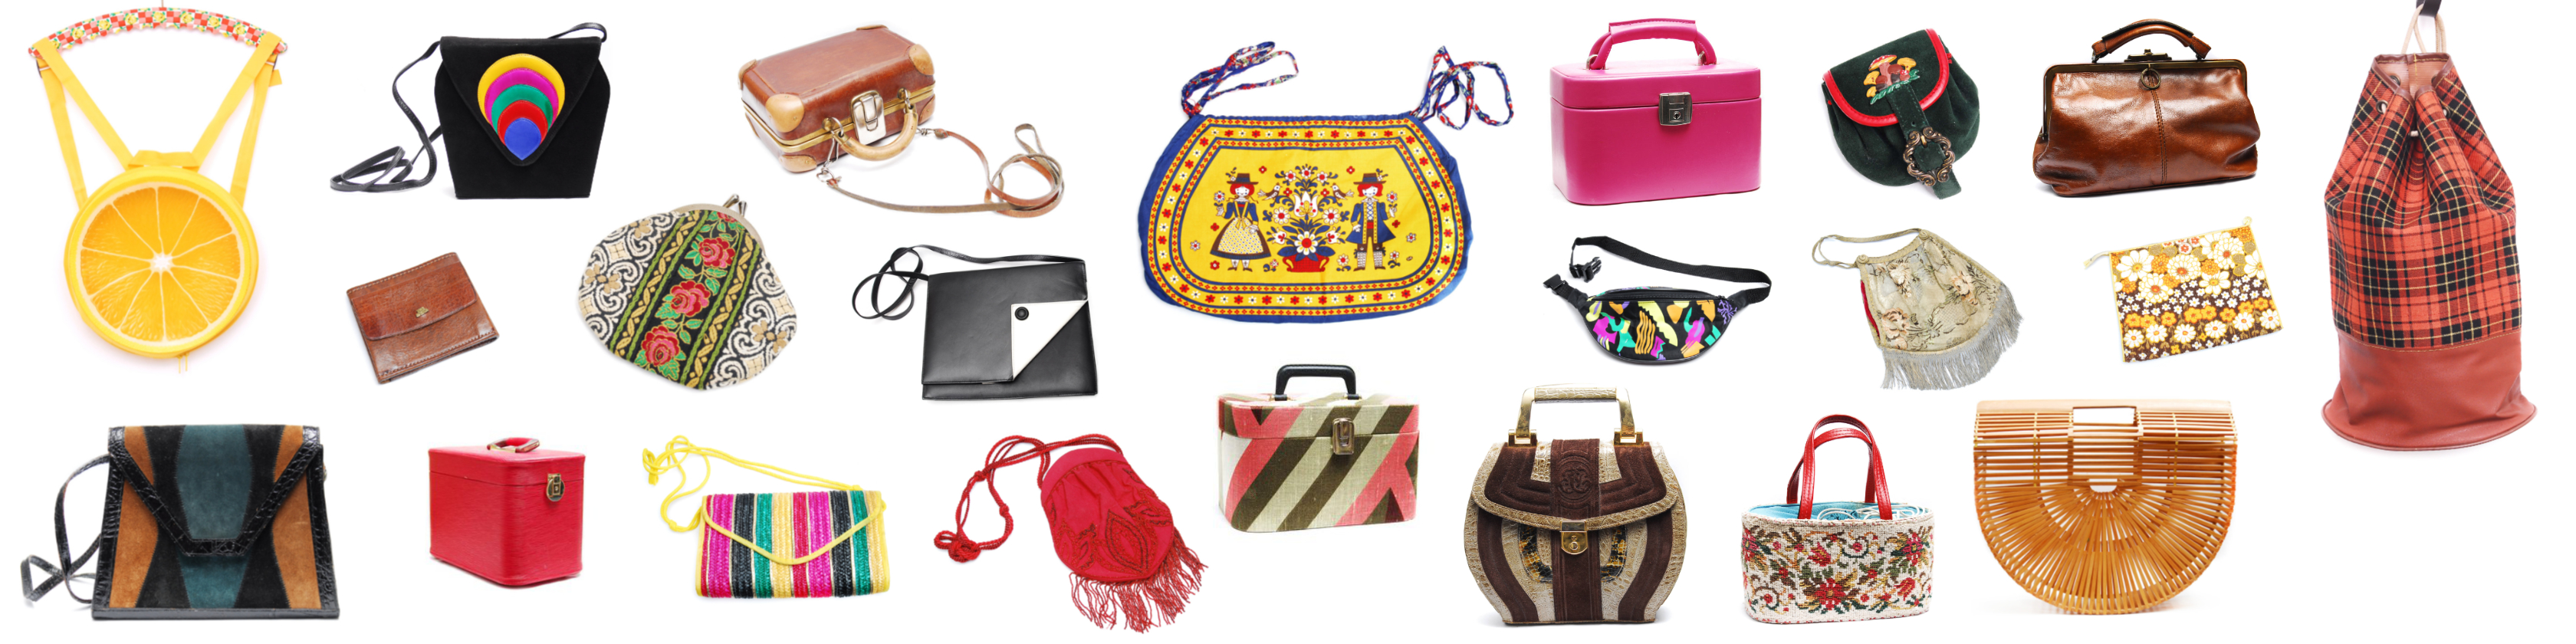 Vintage bags & cases